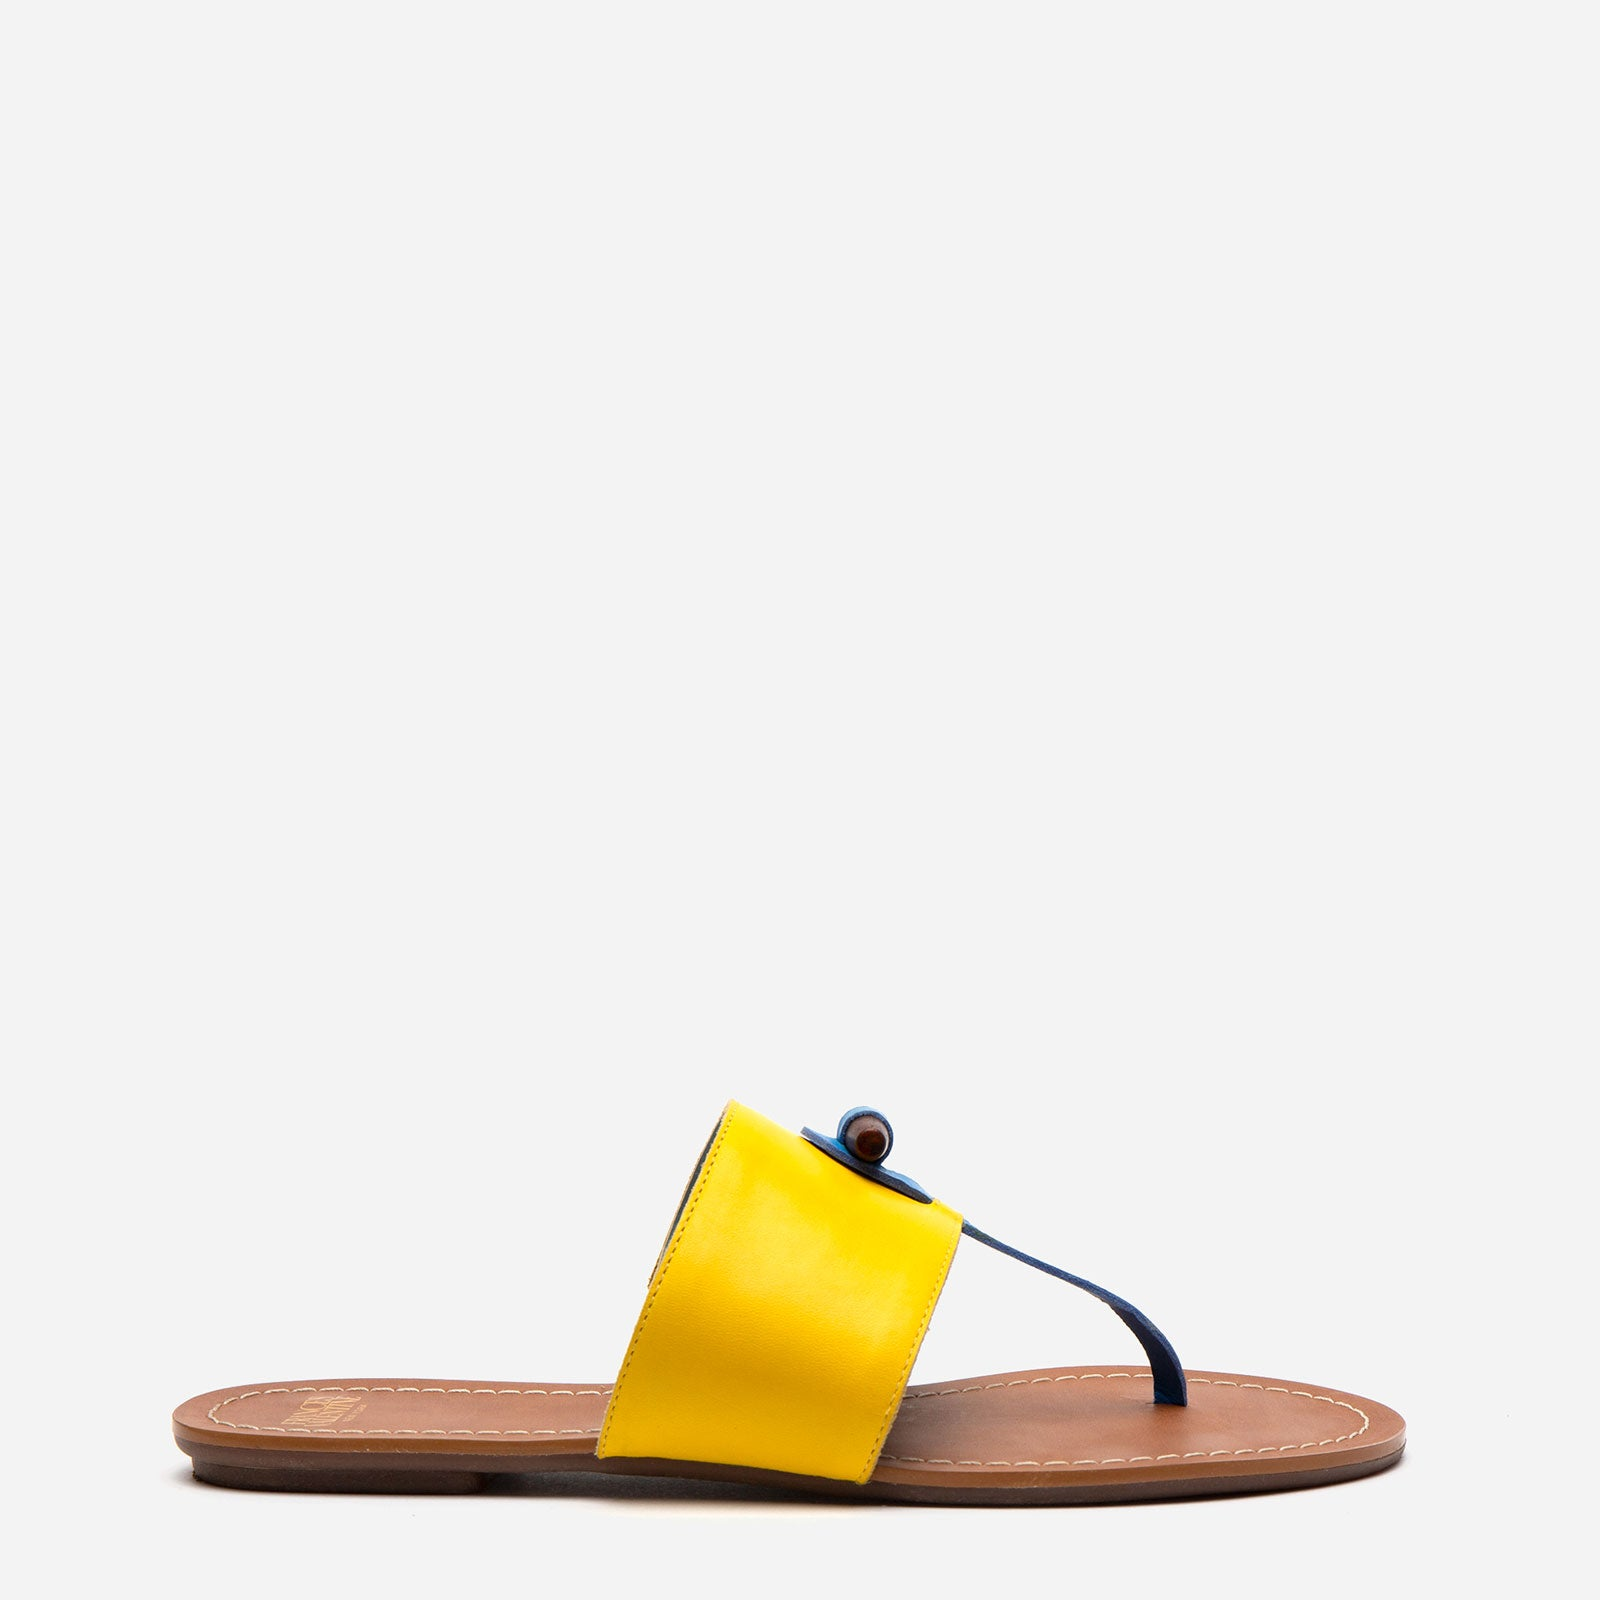 Toggle Leather Sandal Yellow - Frances Valentine